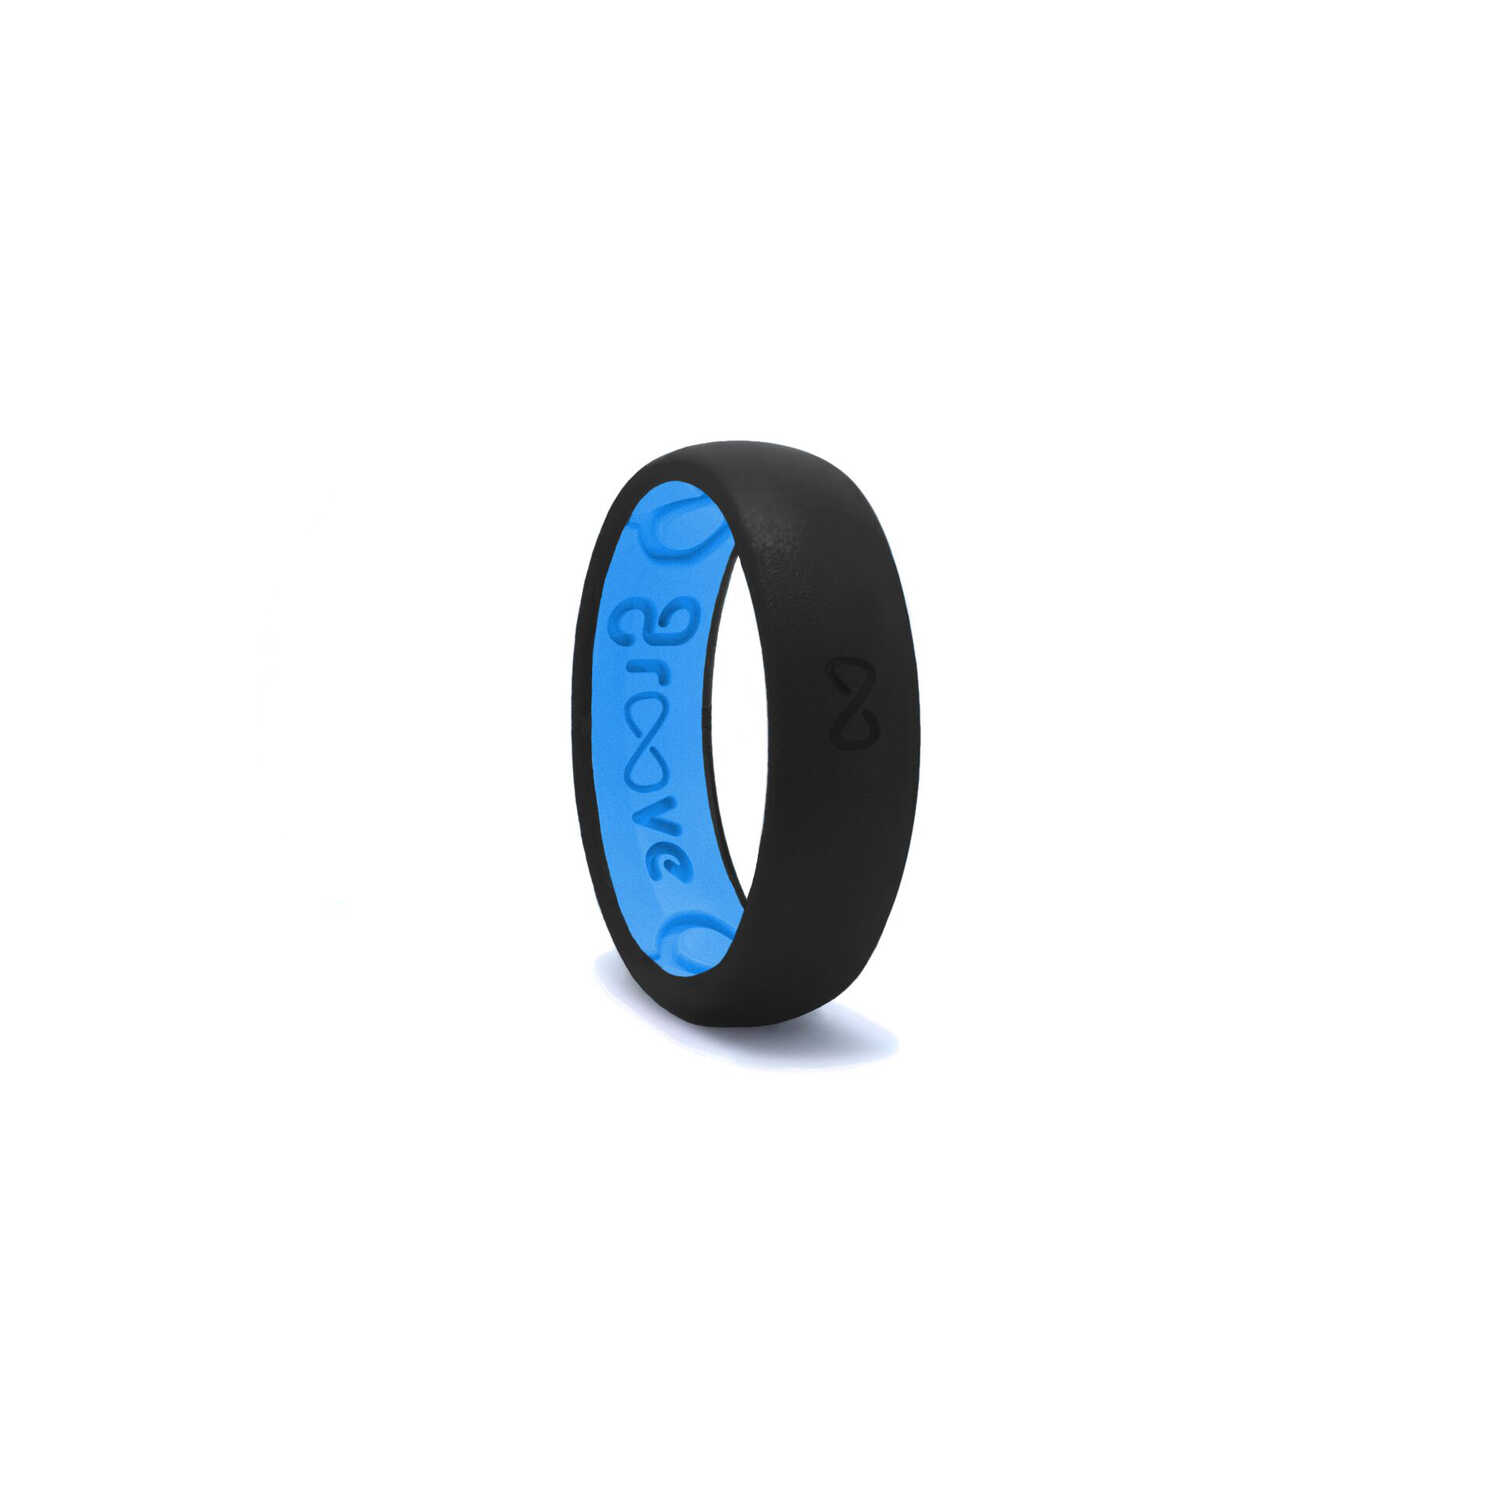 Groove Life  Unisex  Midnight Black/Blue  Wedding Band  Silicone  Water Resistant Round